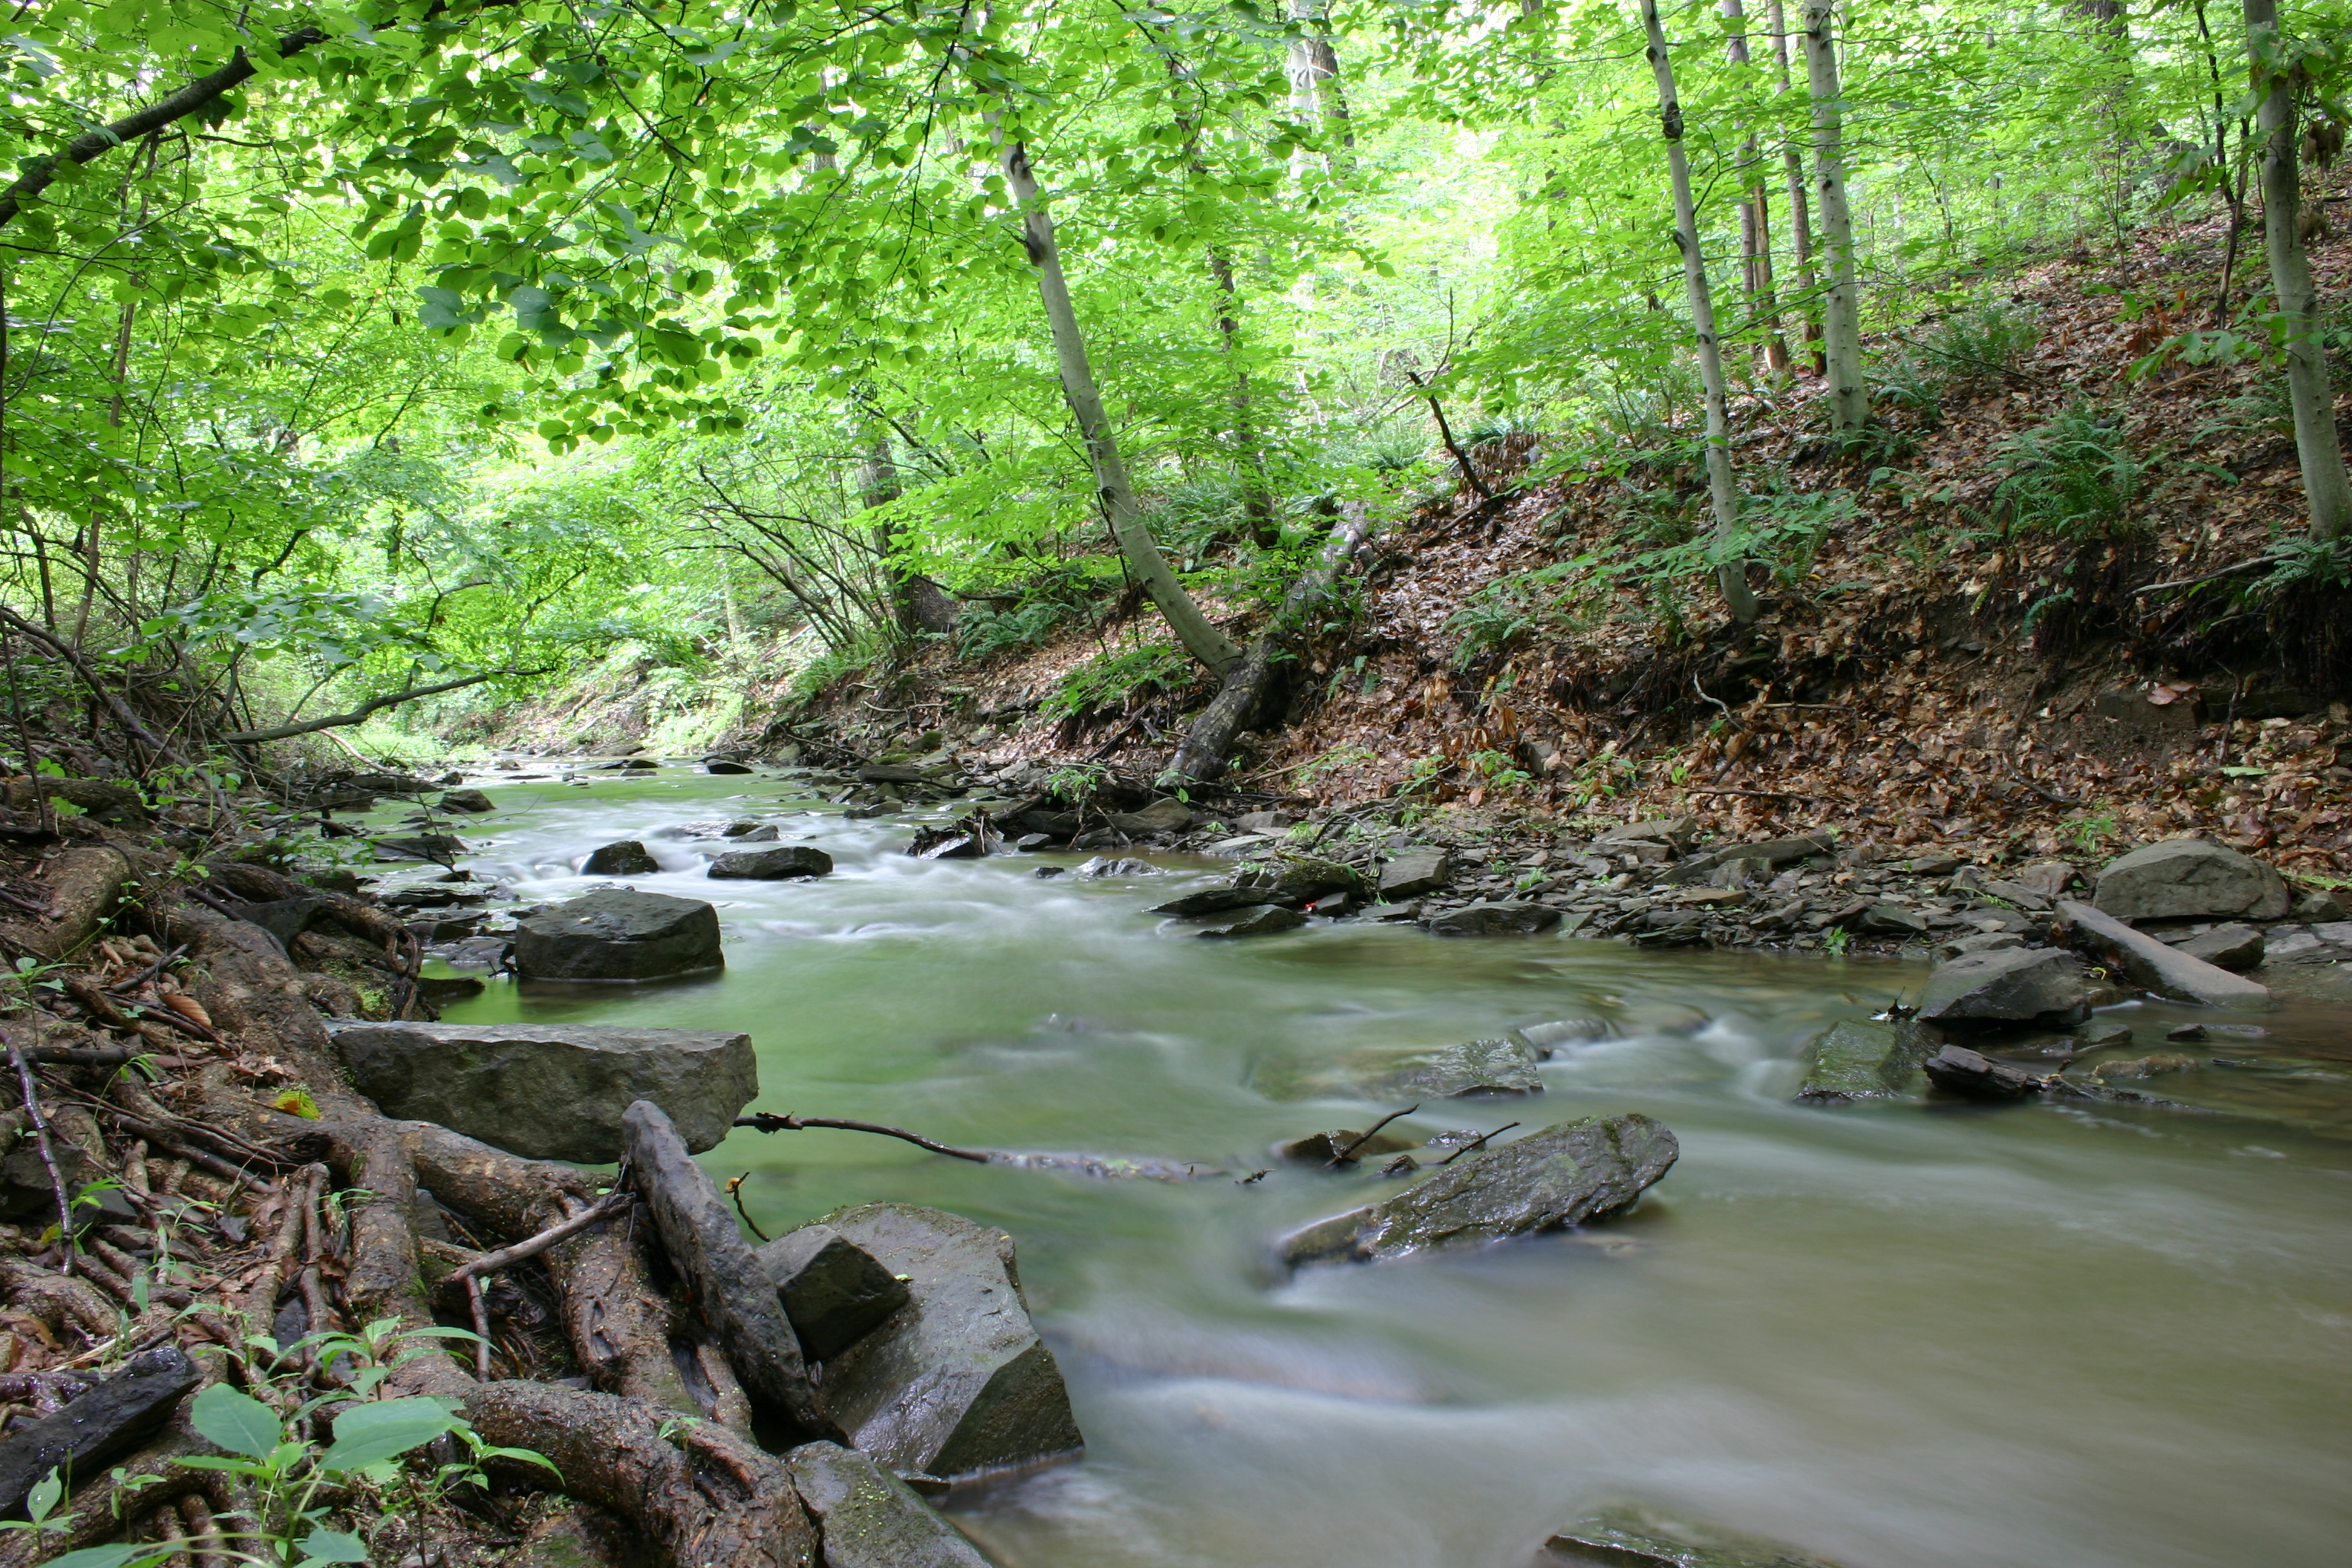 Creek in summer